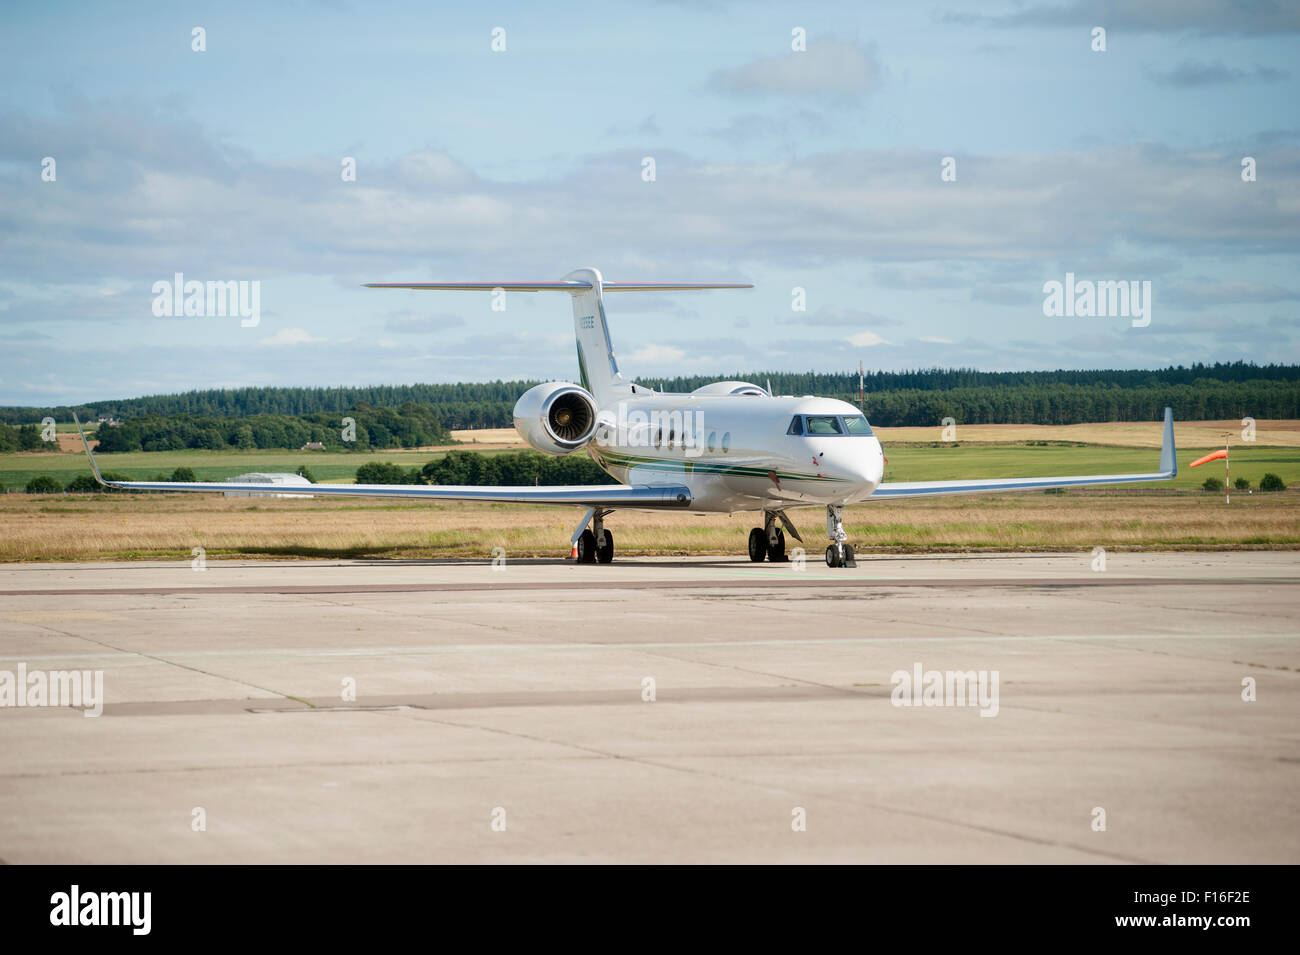 Gulfstream Aerospace G-IV Gulfstream IV-SP (N225EE) parked at Inverness airport, Scotland. - Stock Image